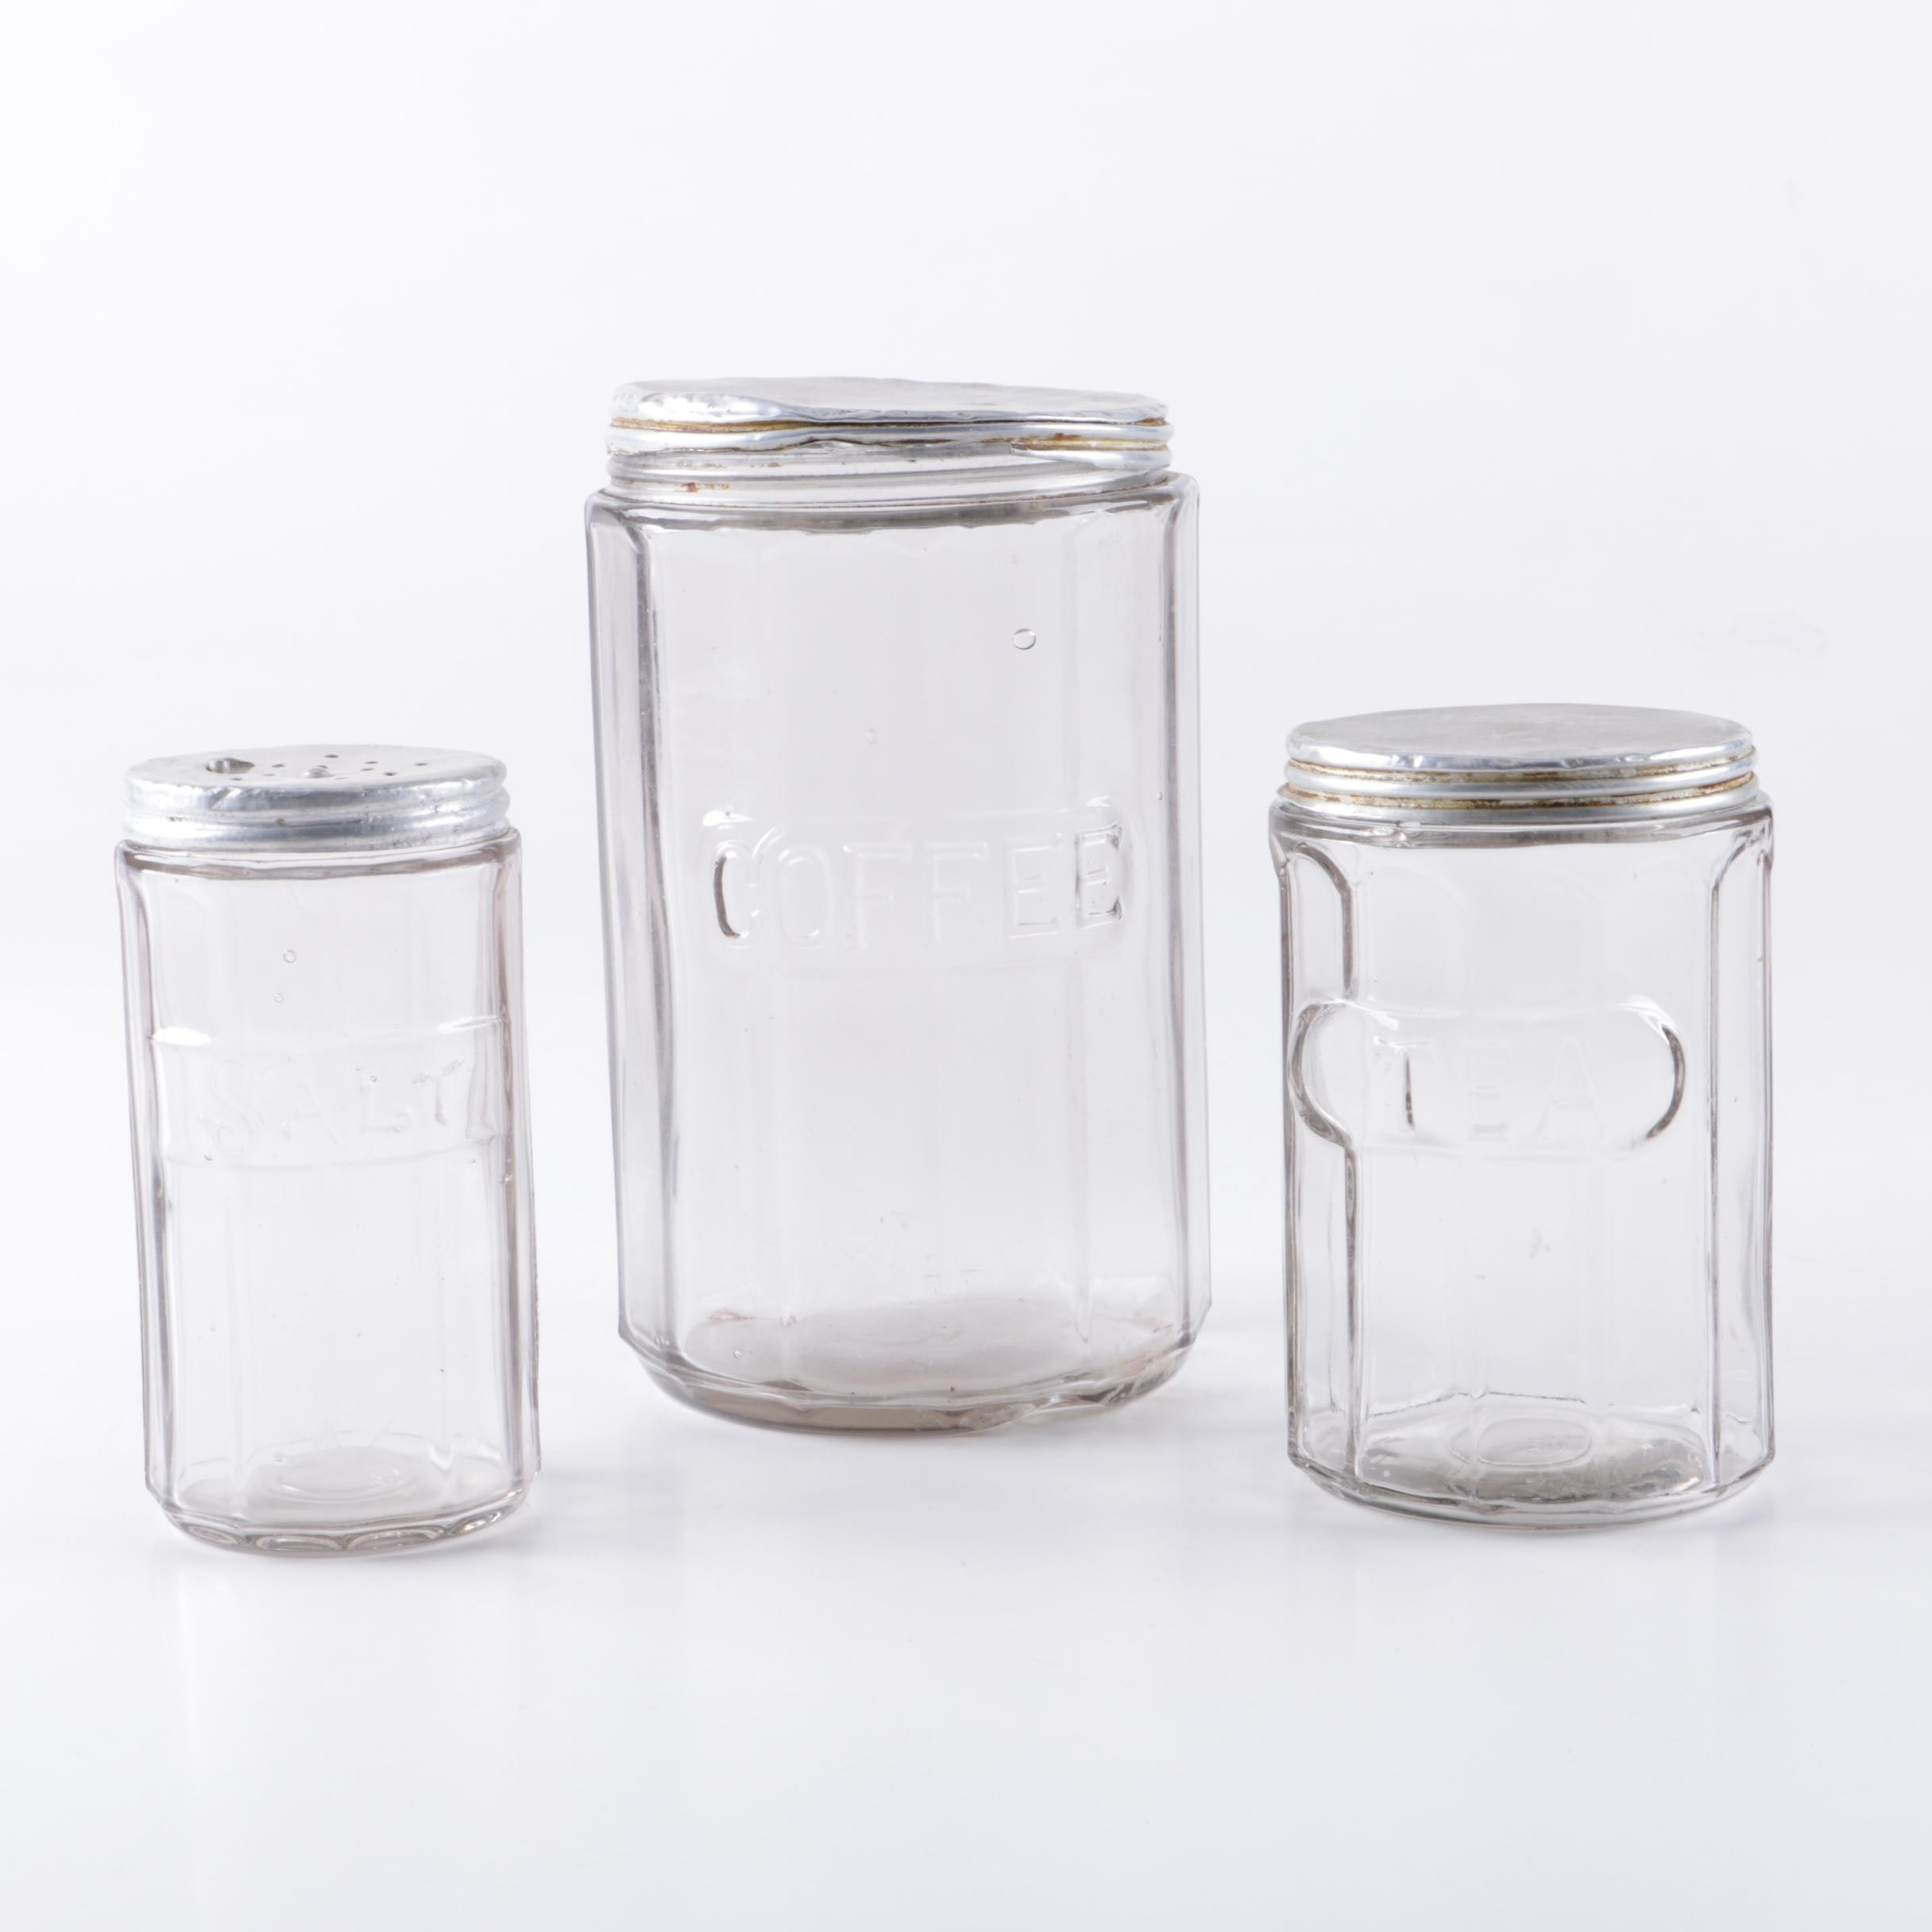 Vintage Hoosier Style Glass Kitchen Canisters